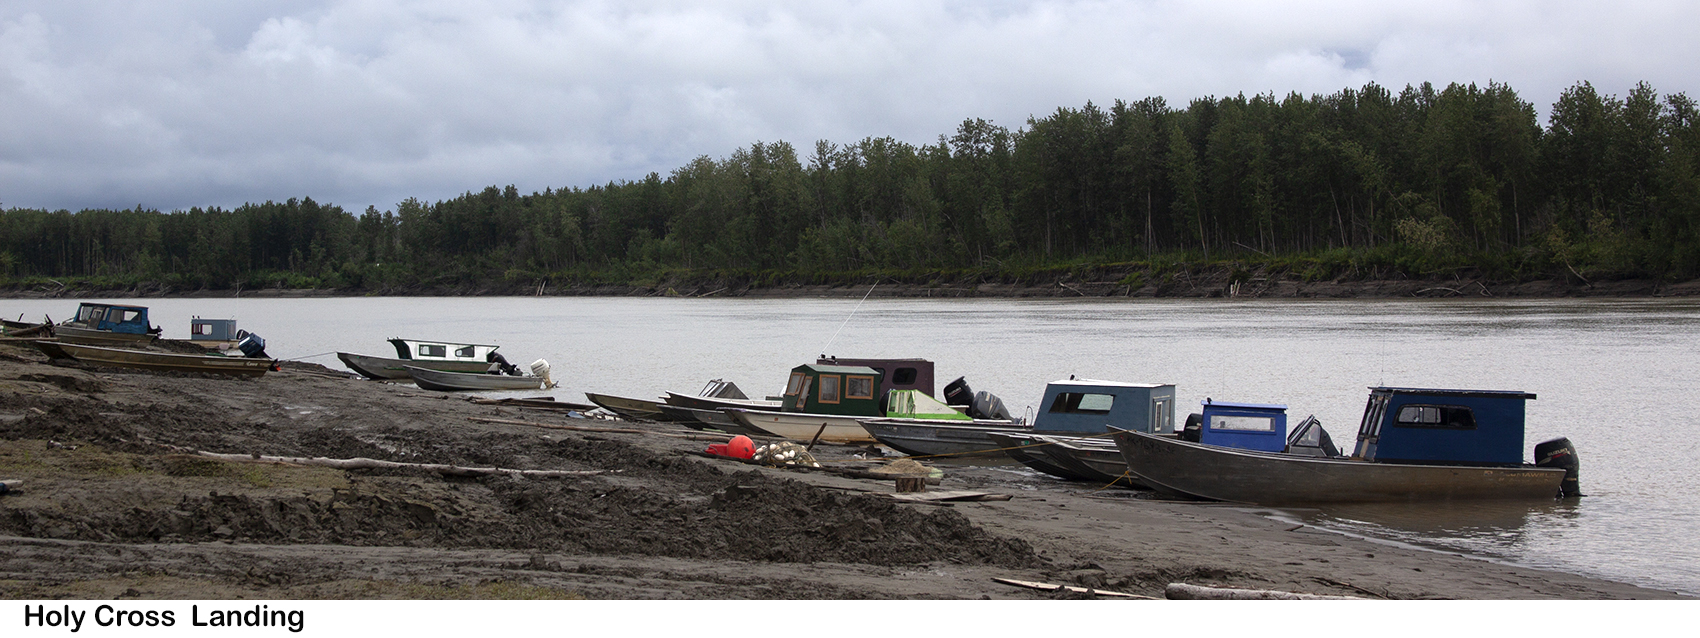 River boats on the banks of a slough off the Yukon River.